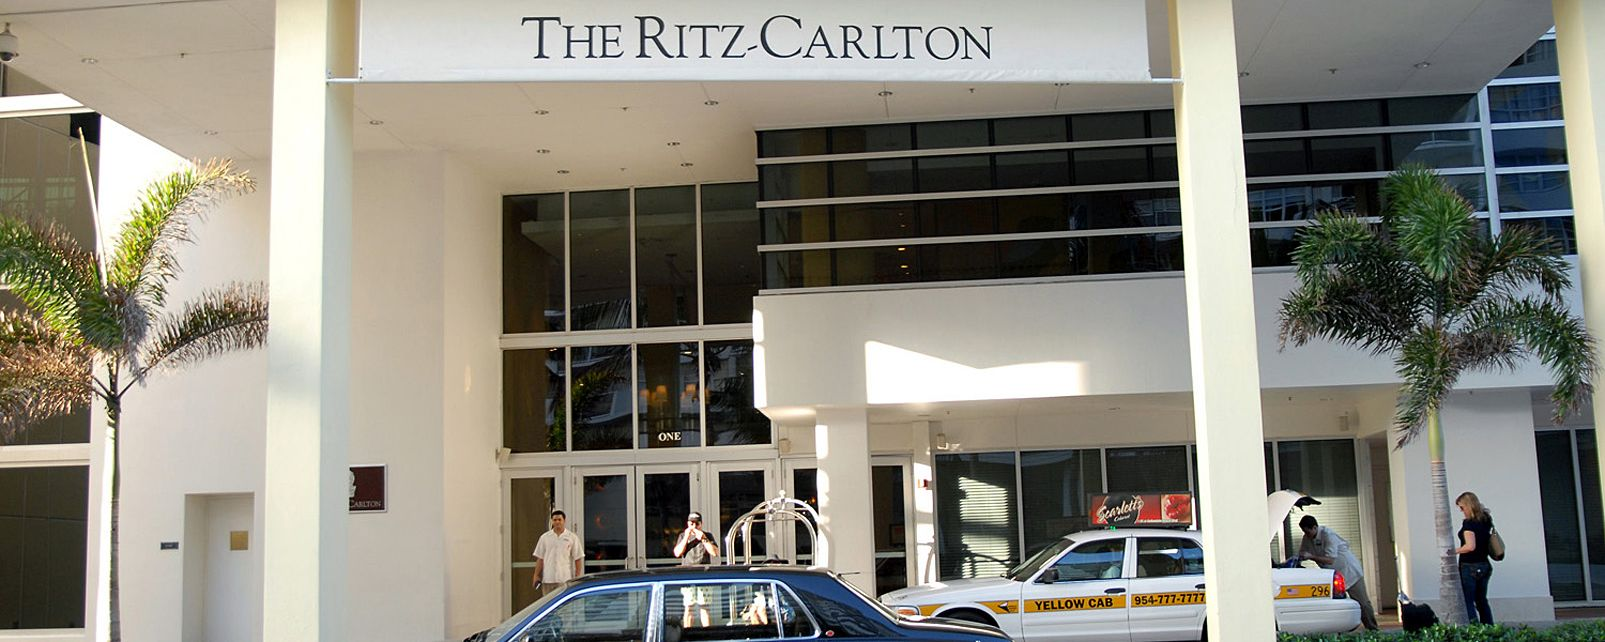 Hotel Ritz-Carlton South Beach (previously the Di Lido)